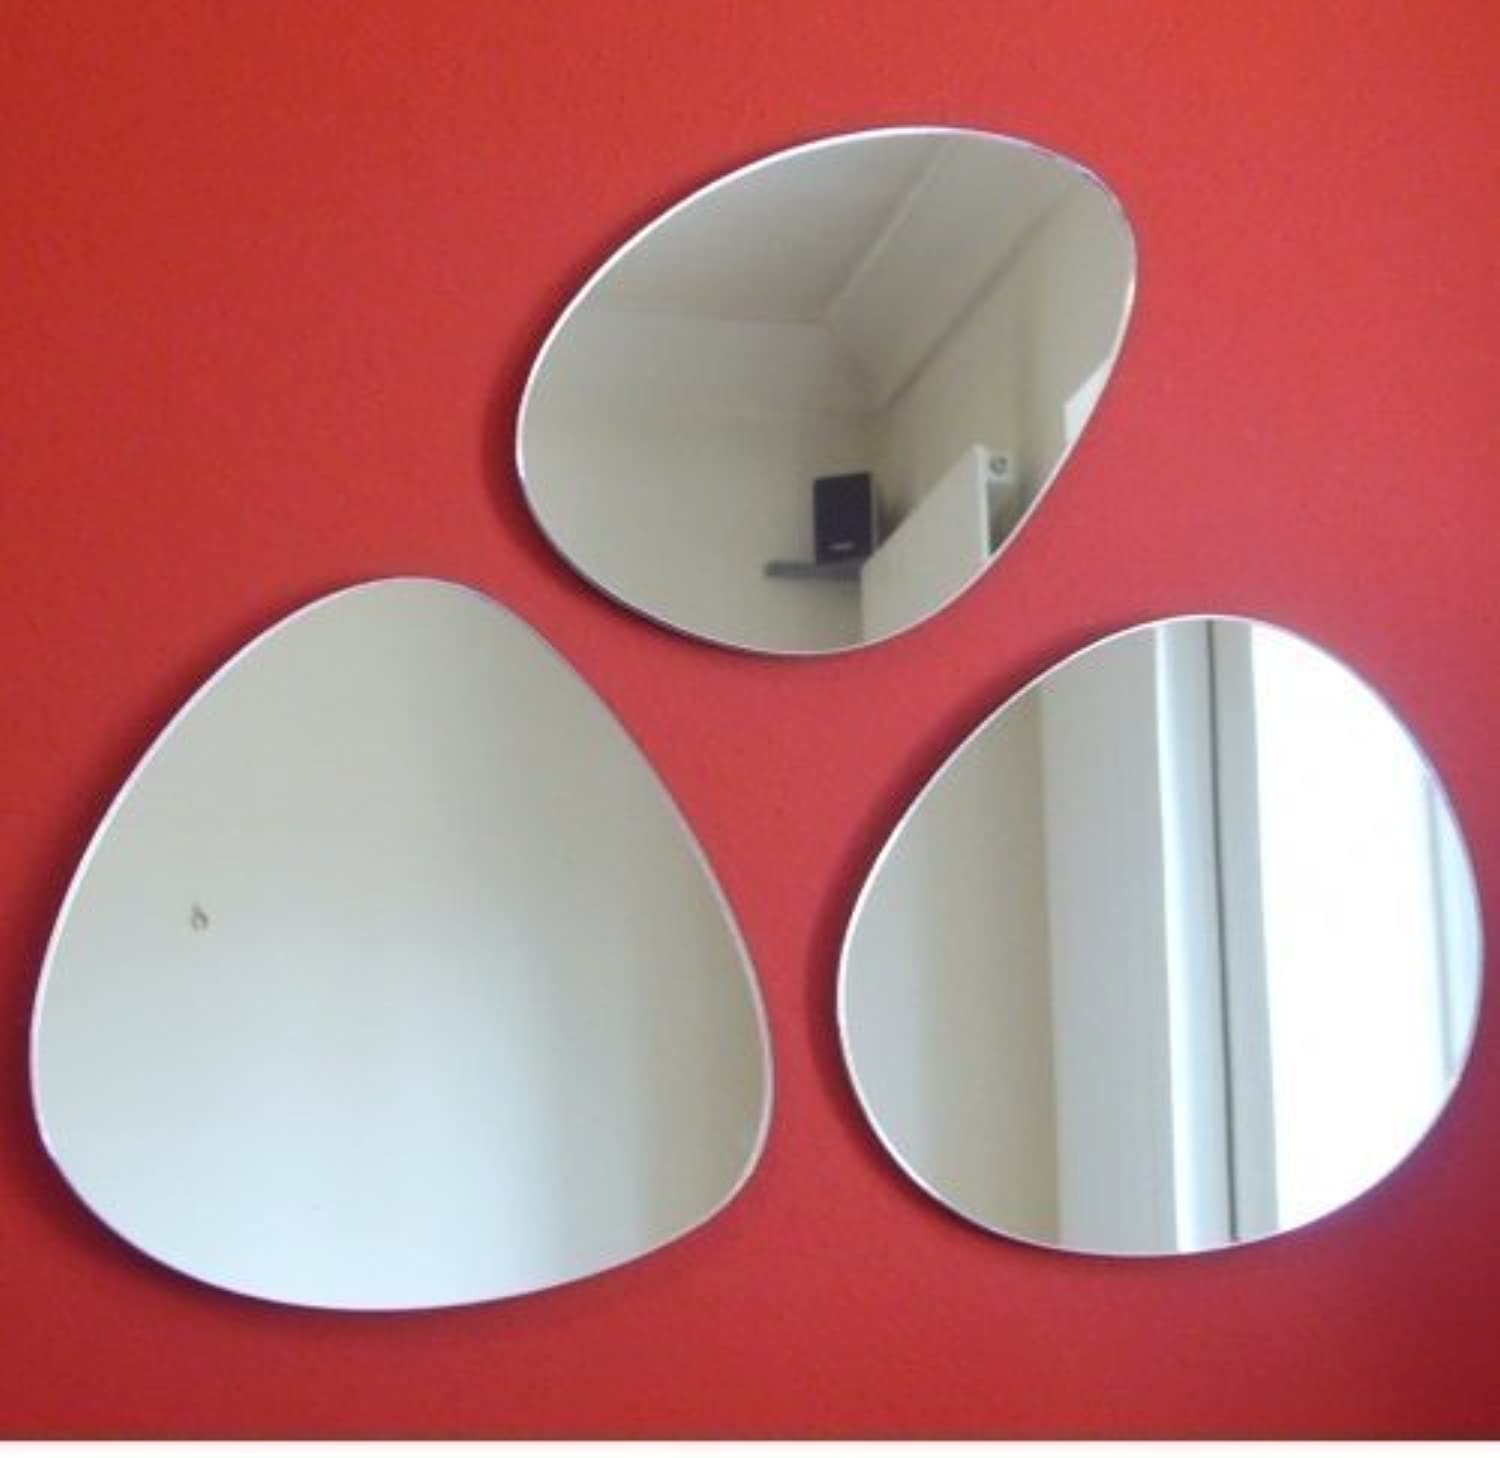 35cm x 3 Group of Pebbles Mirrors (Wall Space, 70cm x 70cm)